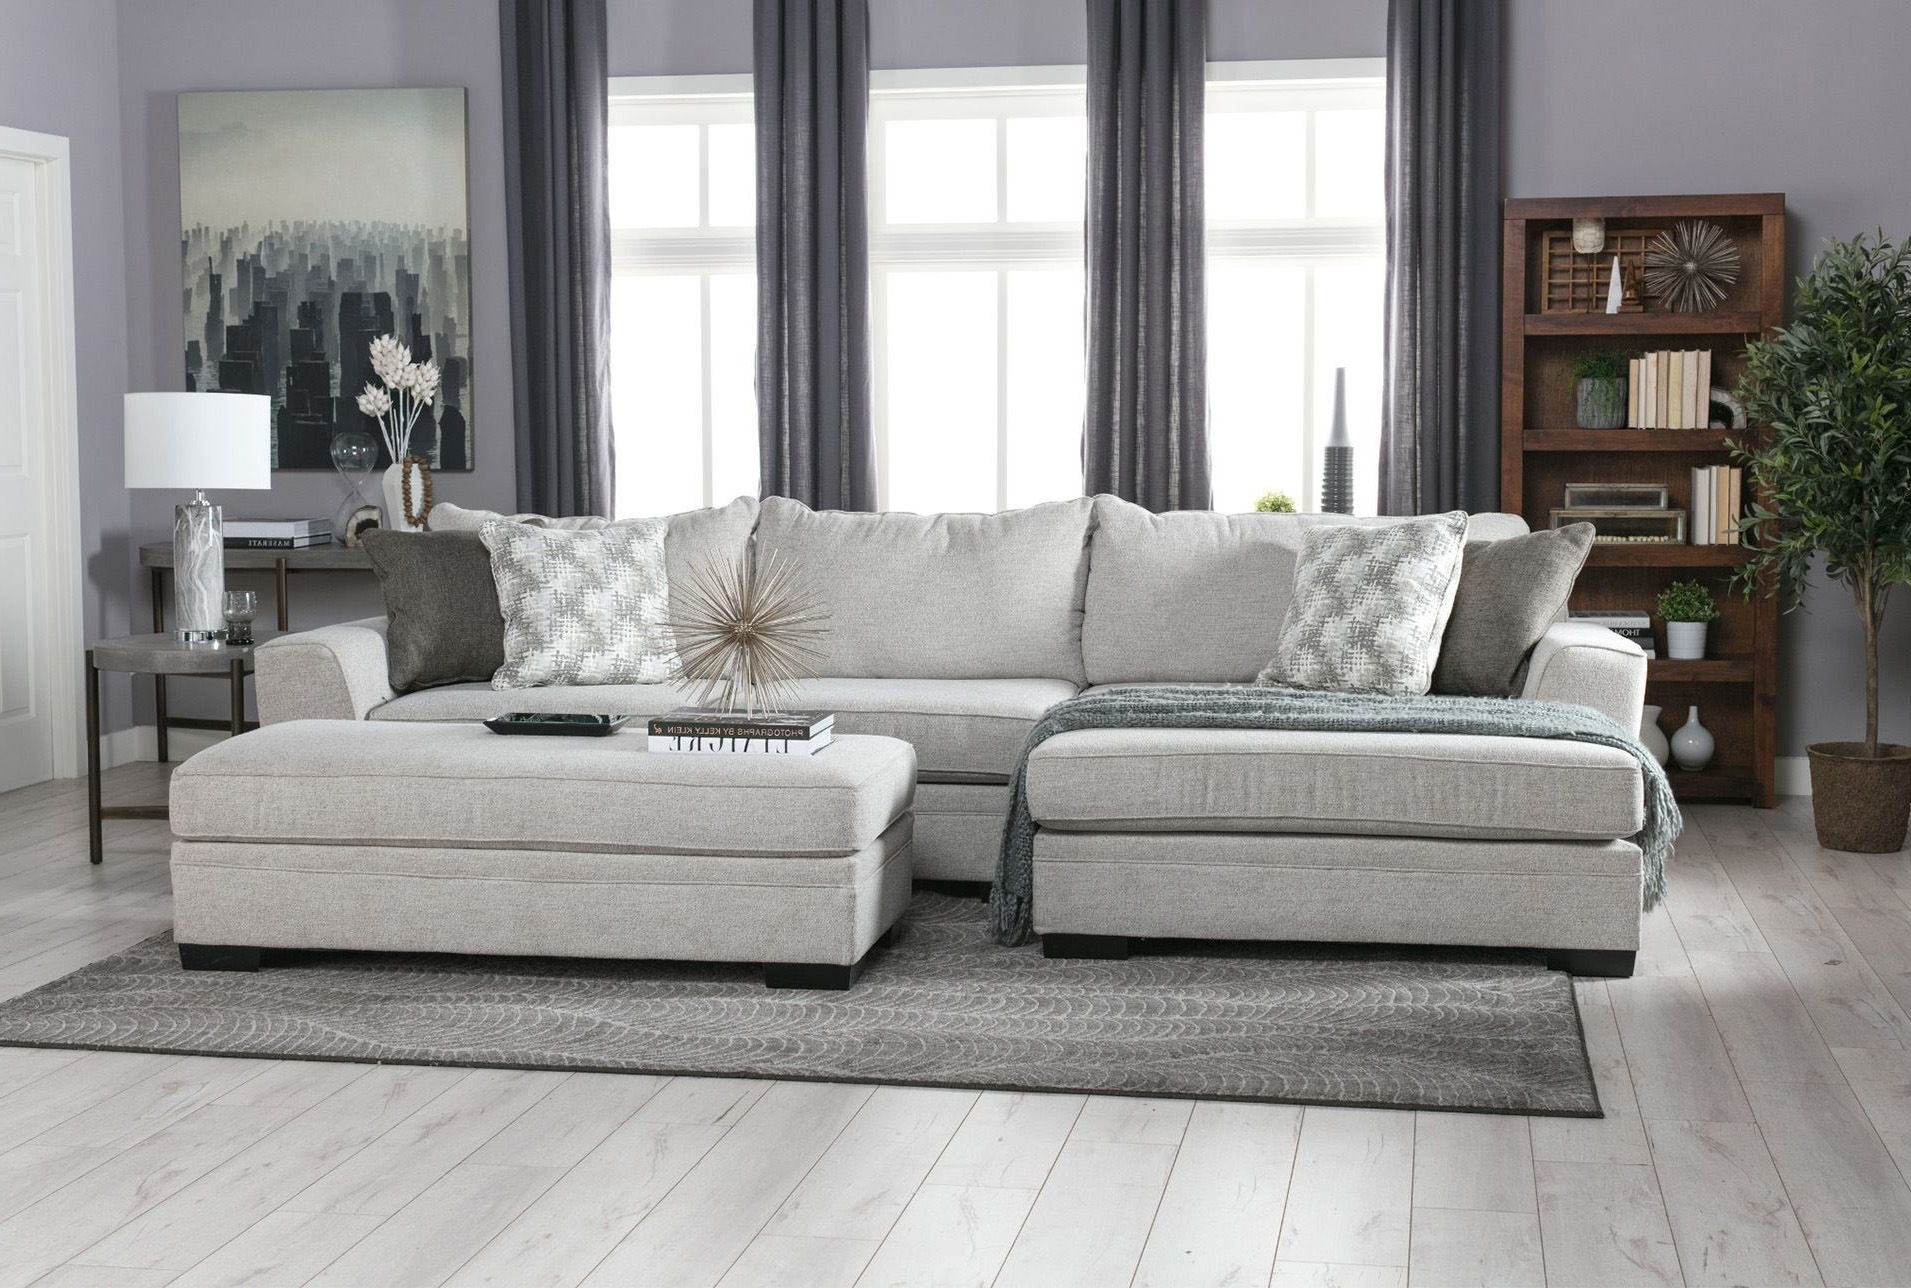 Delano 2 Piece Sectional W/raf Oversized Chaise | Living Room Ideas In Haven Blue Steel 3 Piece Sectionals (View 14 of 25)